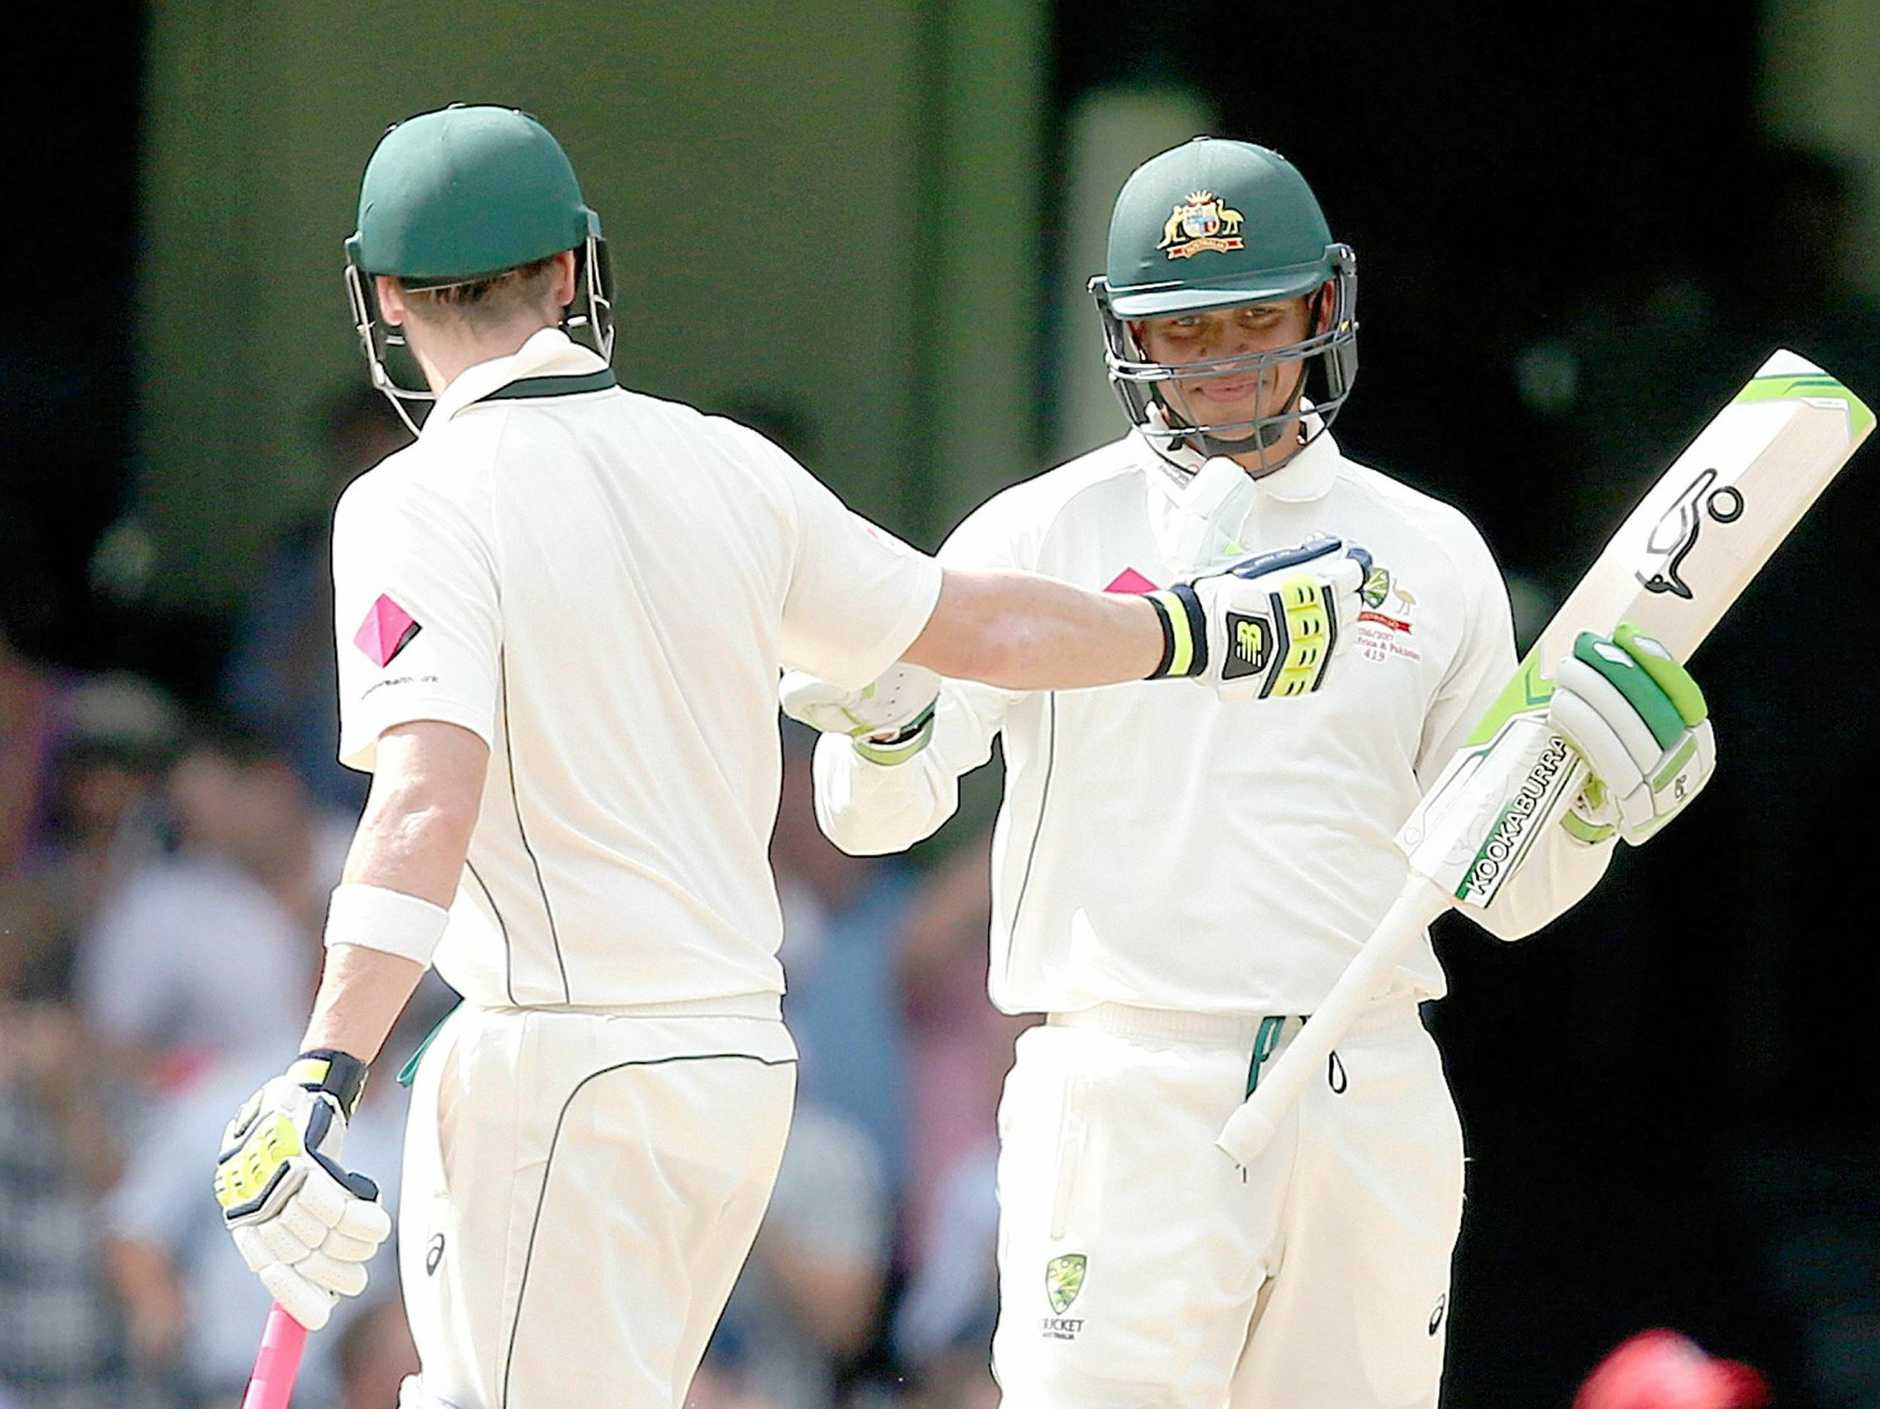 Usman Khawaja of Australia (right) celebrates with captain Steve Smith after hitting his fifty runs during Day 4 of the Third Test match between Australia and Pakistan at the Sydney Cricket Ground in Sydney on Friday, Jan. 6, 2017. (AAP Image/David Moir) NO ARCHIVING, EDITORIAL USE ONLY, IMAGES TO BE USED FOR NEWS REPORTING PURPOSES ONLY, NO COMMERCIAL USE WHATSOEVER, NO USE IN BOOKS WITHOUT PRIOR WRITTEN CONSENT FROM AAP